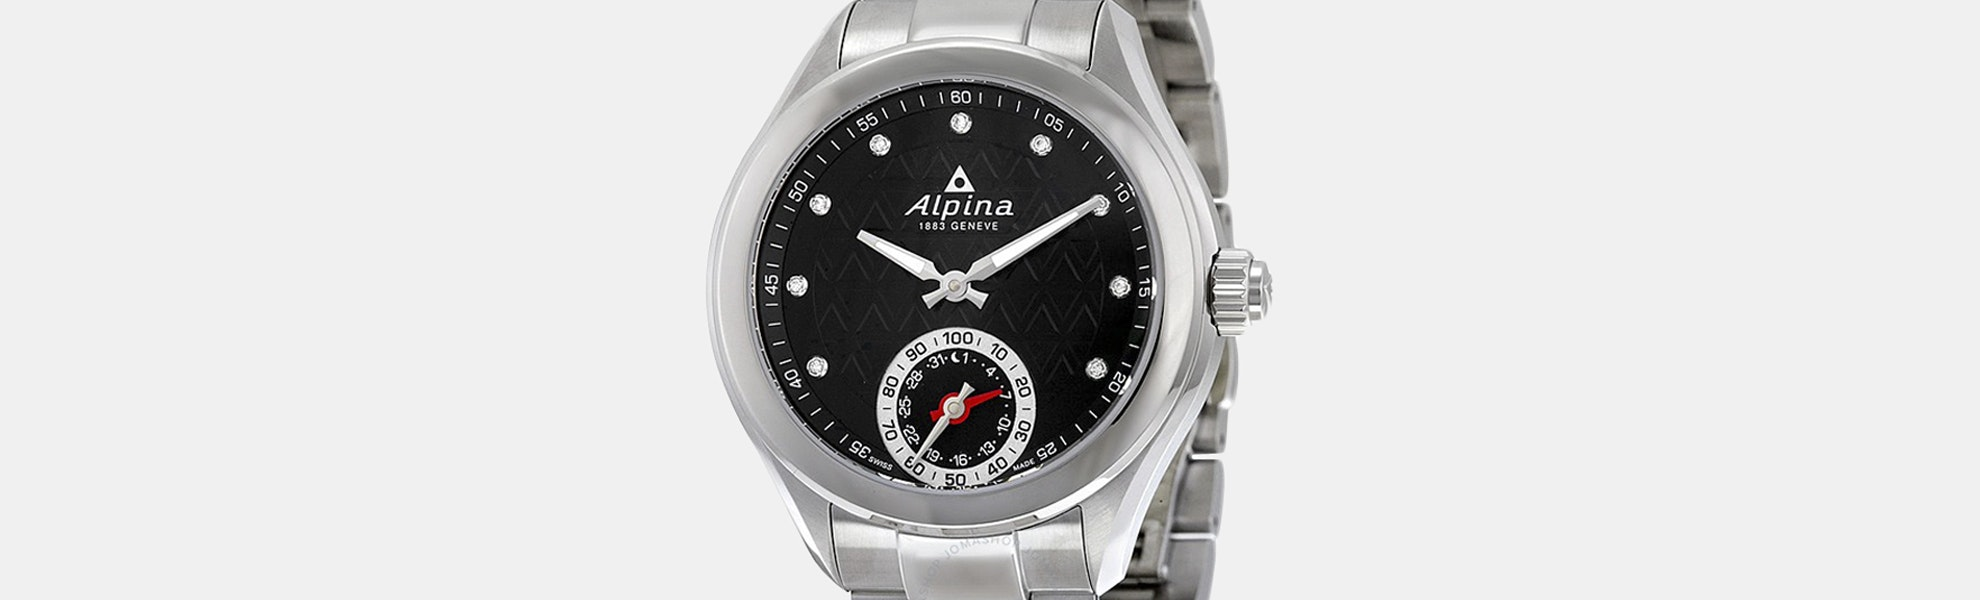 Alpina Ladies' Horological Smartwatch